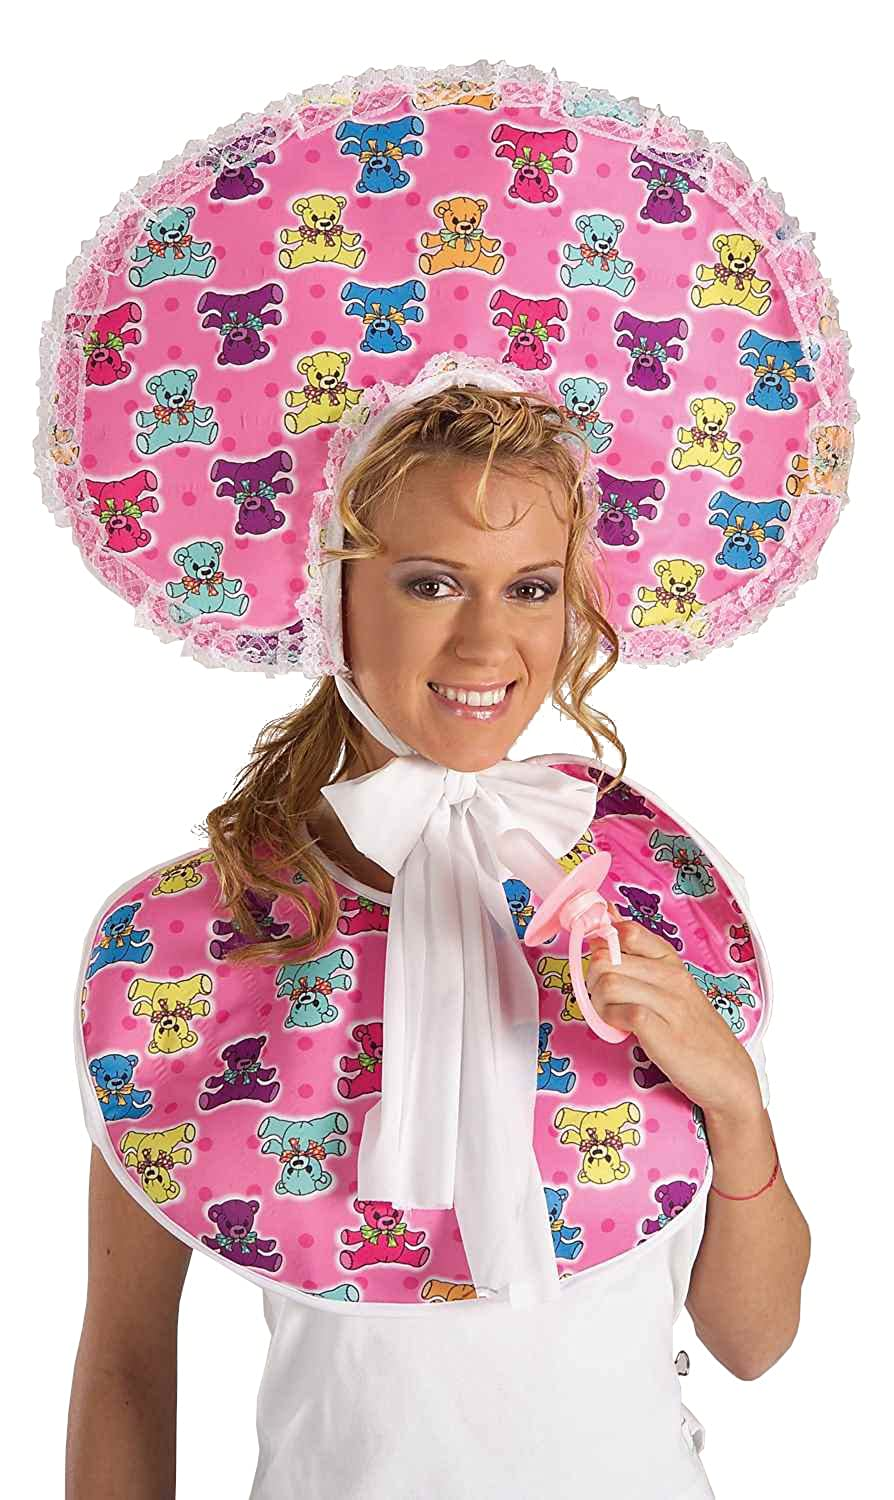 Forum Novelties Women's Big Baby Girl Deluxe Accessory Bib and Bonnet Set Pink One size Forum Novelties Costumes 58559